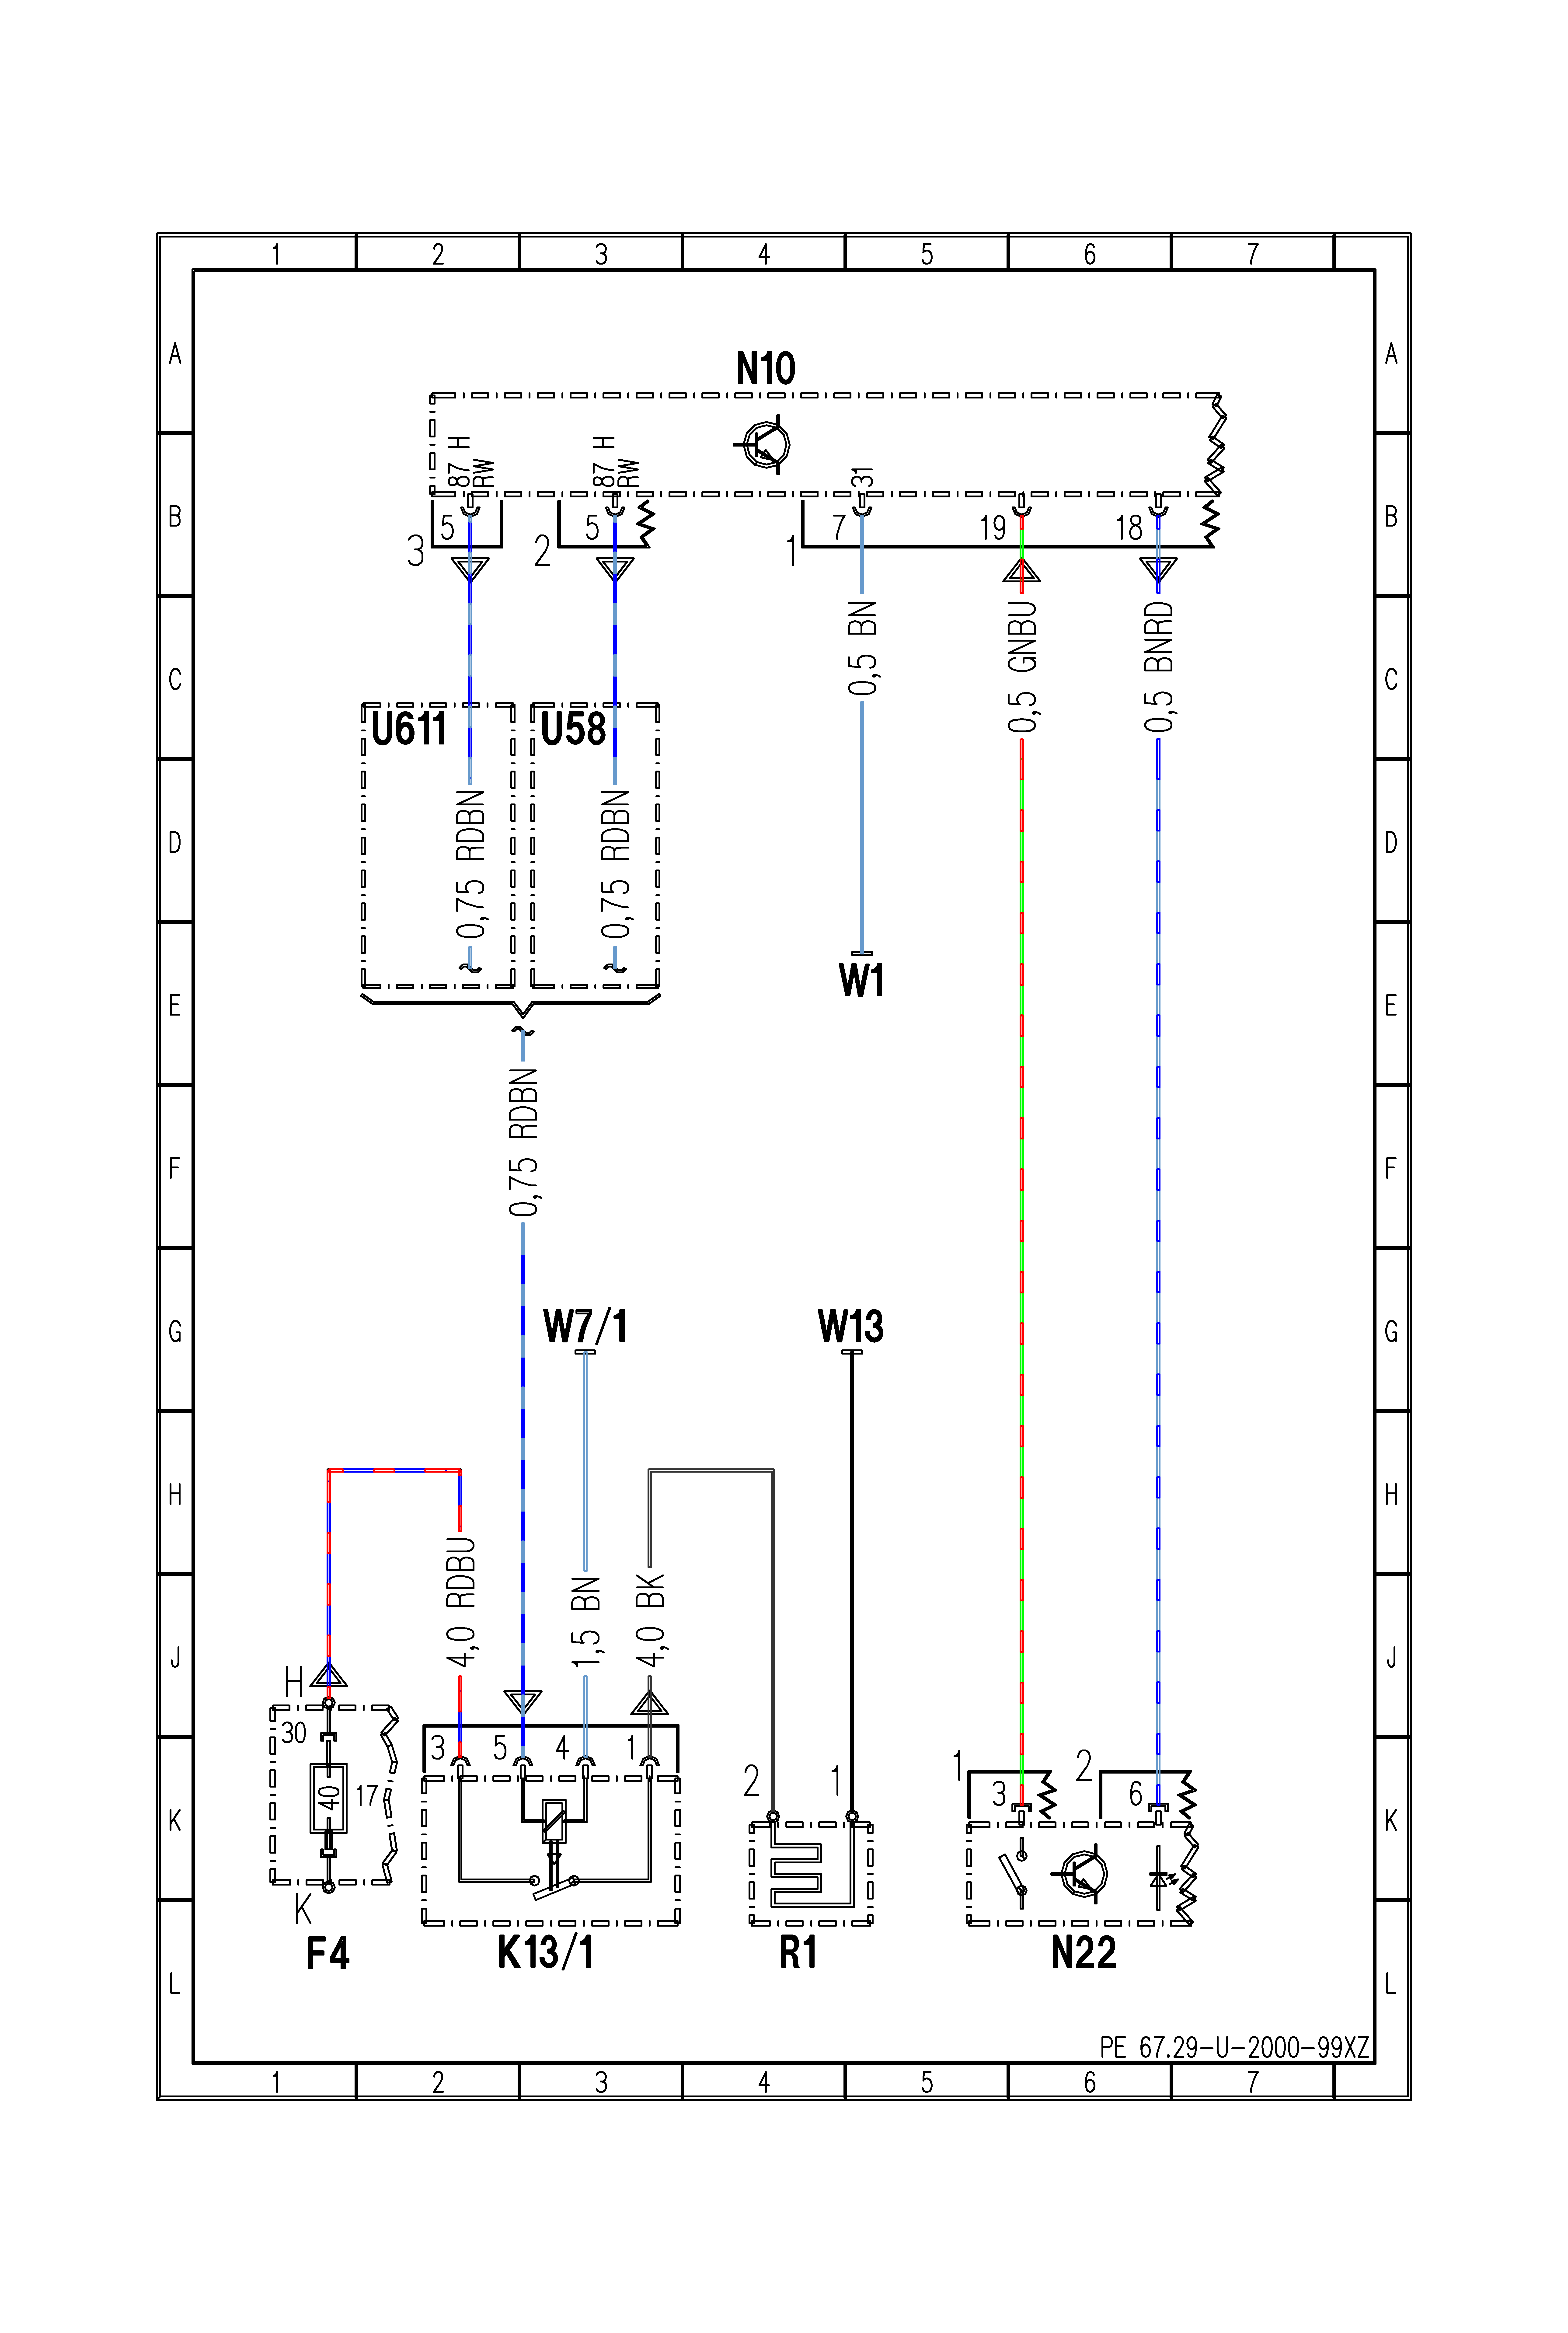 amp wiring schematic 1999 s420 combination relay (n10) wiring diagram? - page 2 ... amp wiring schematic 1998 w140